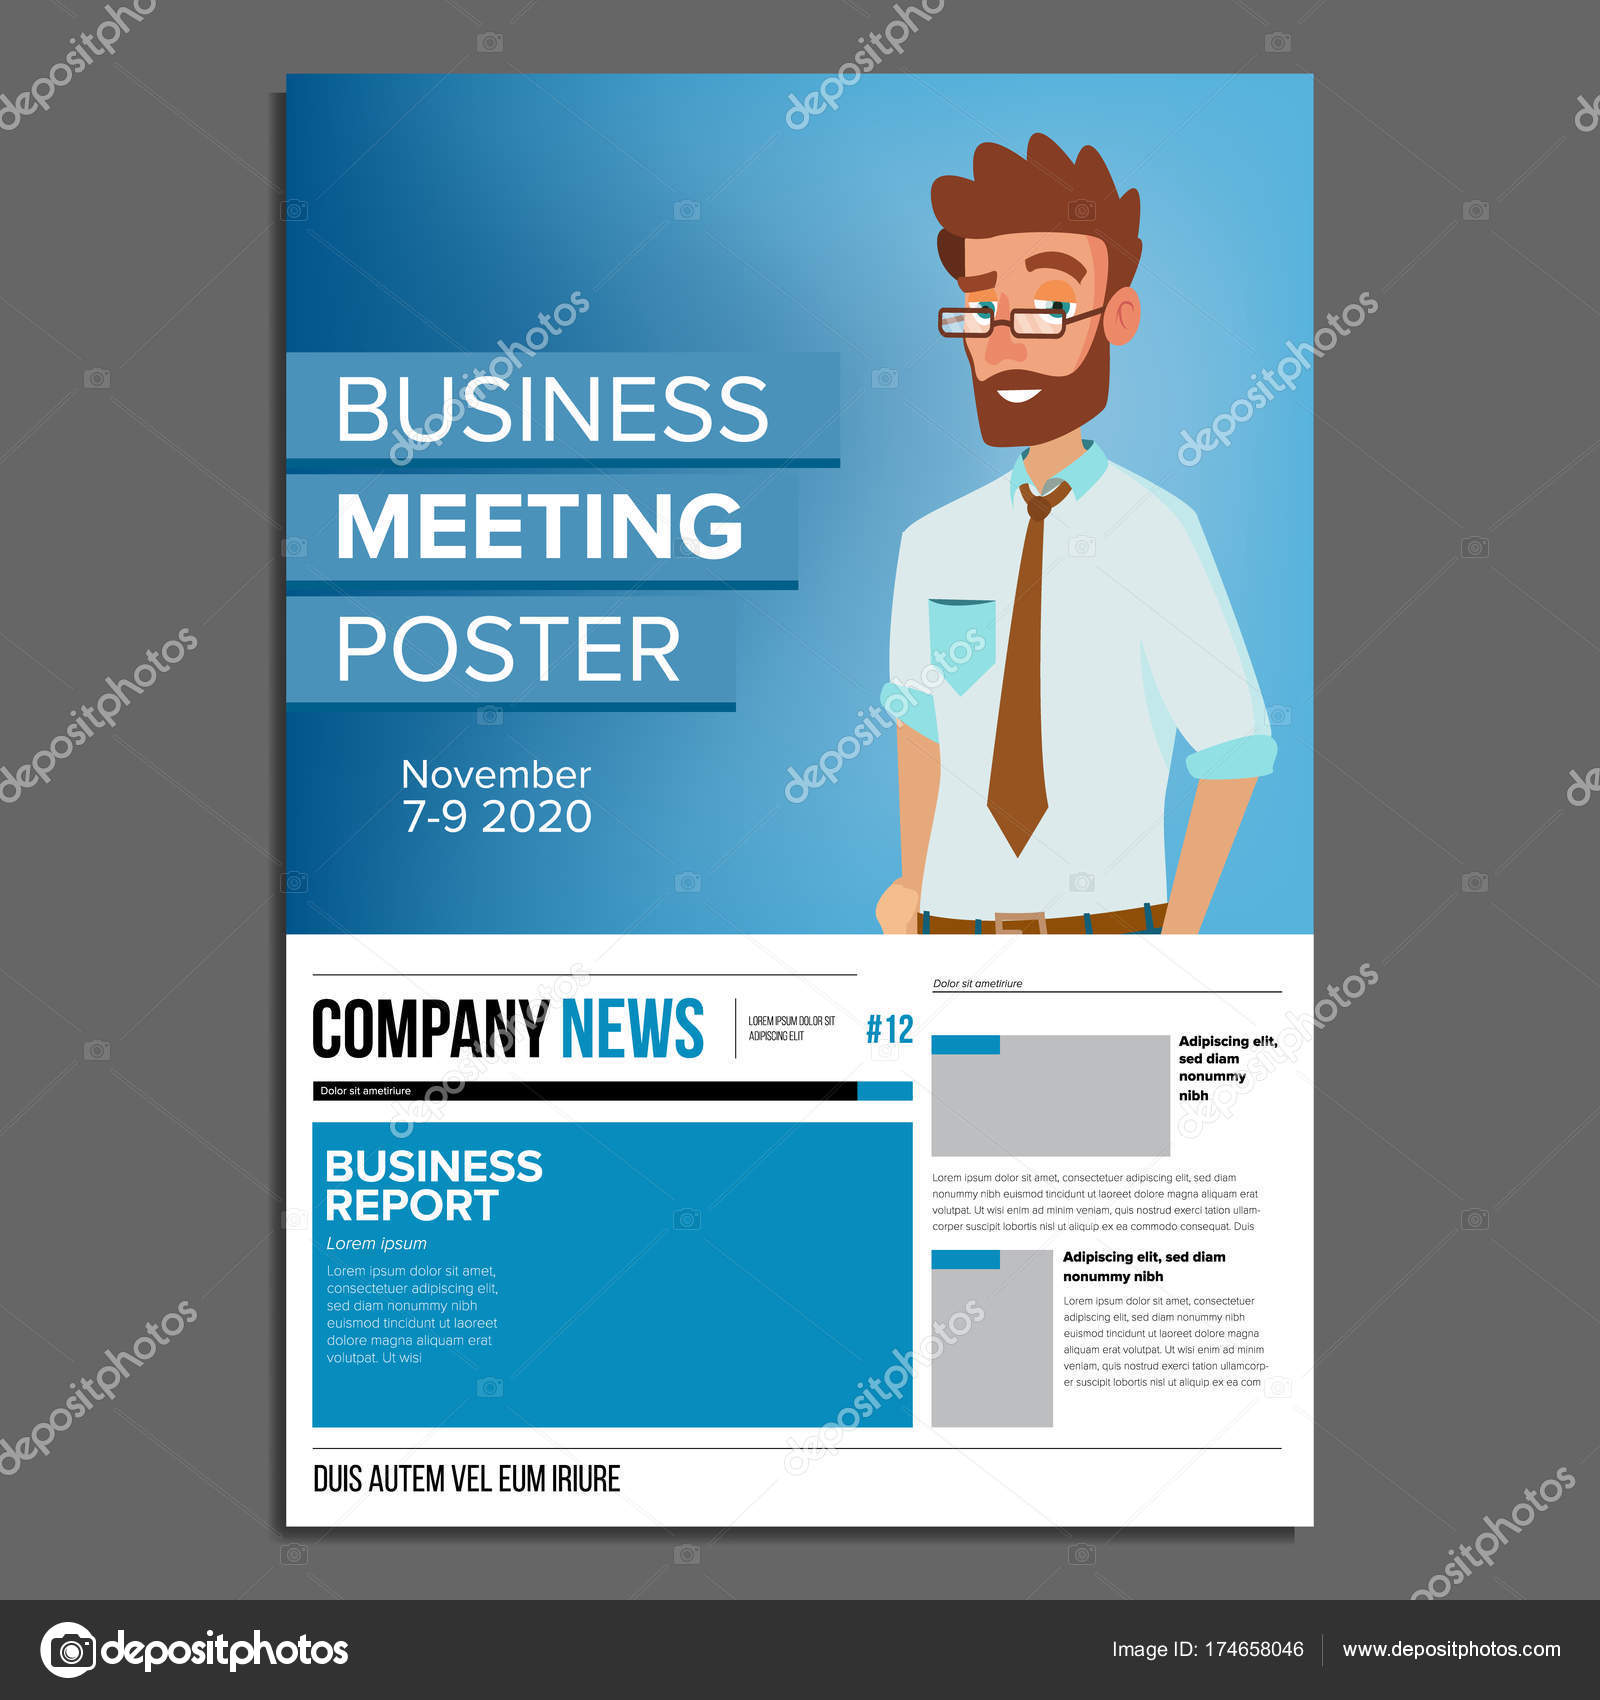 Business meeting poster vector businessman invitation and date business meeting poster vector businessman invitation and date conference template a4 size stopboris Image collections